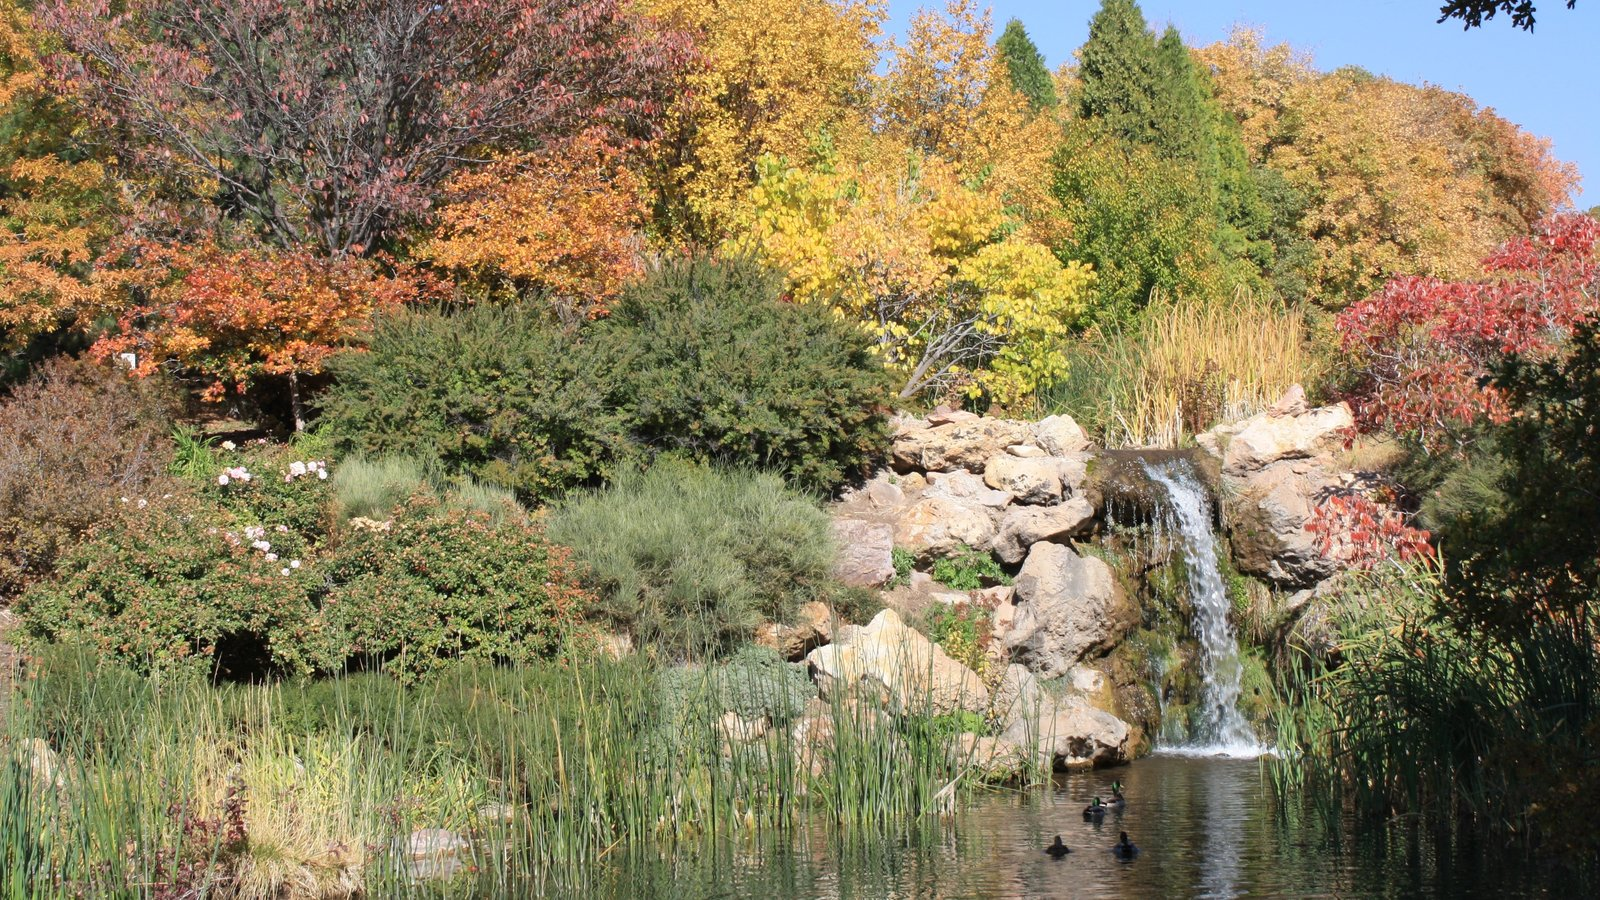 Red Butte Garden and Arboreteum featuring fall colors, a park and a lake or waterhole